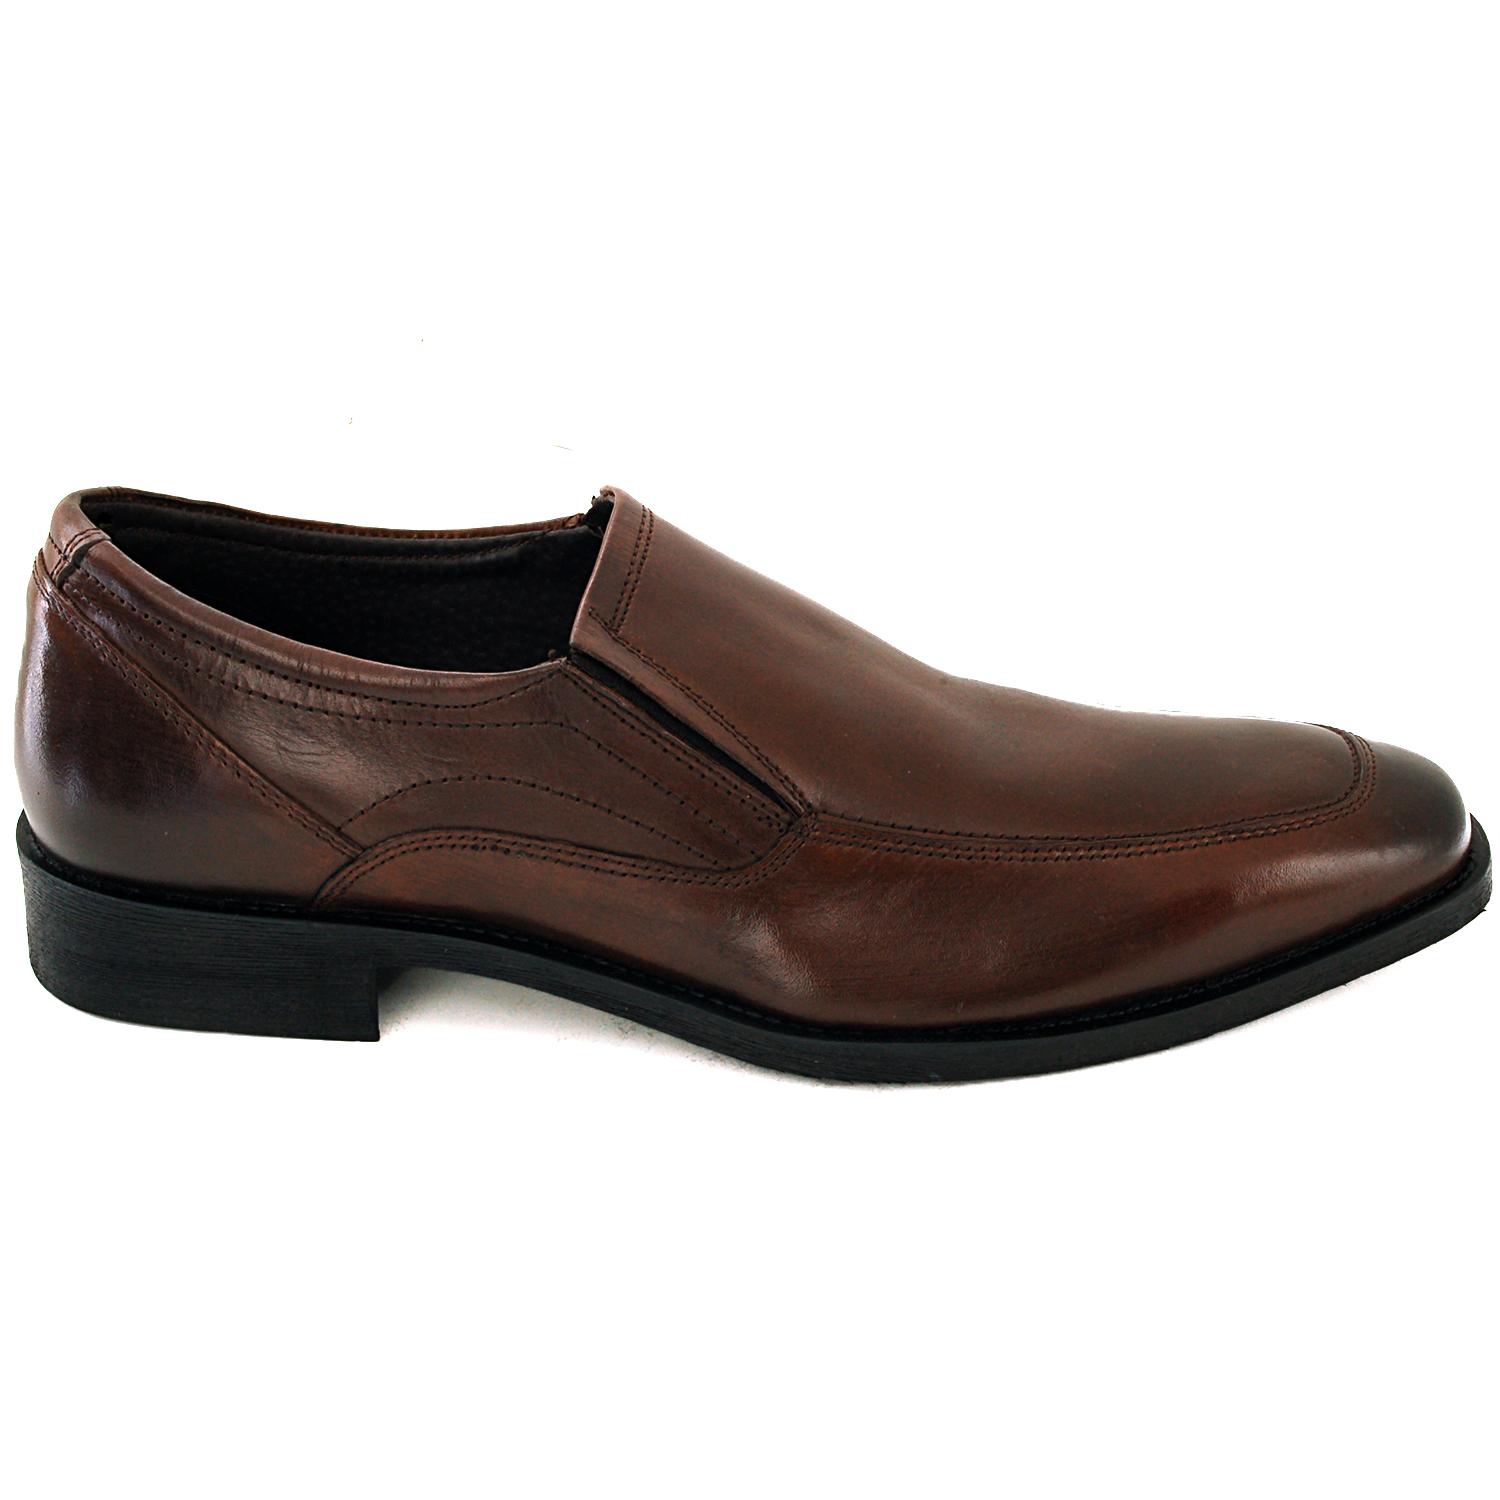 Giorgio Brutini Men's Slip-On ... Leather Dress Shoes Inexpensive cheap price cheap online shop cheap sale discount top quality free shipping cheap online zK1ZEDPlpK